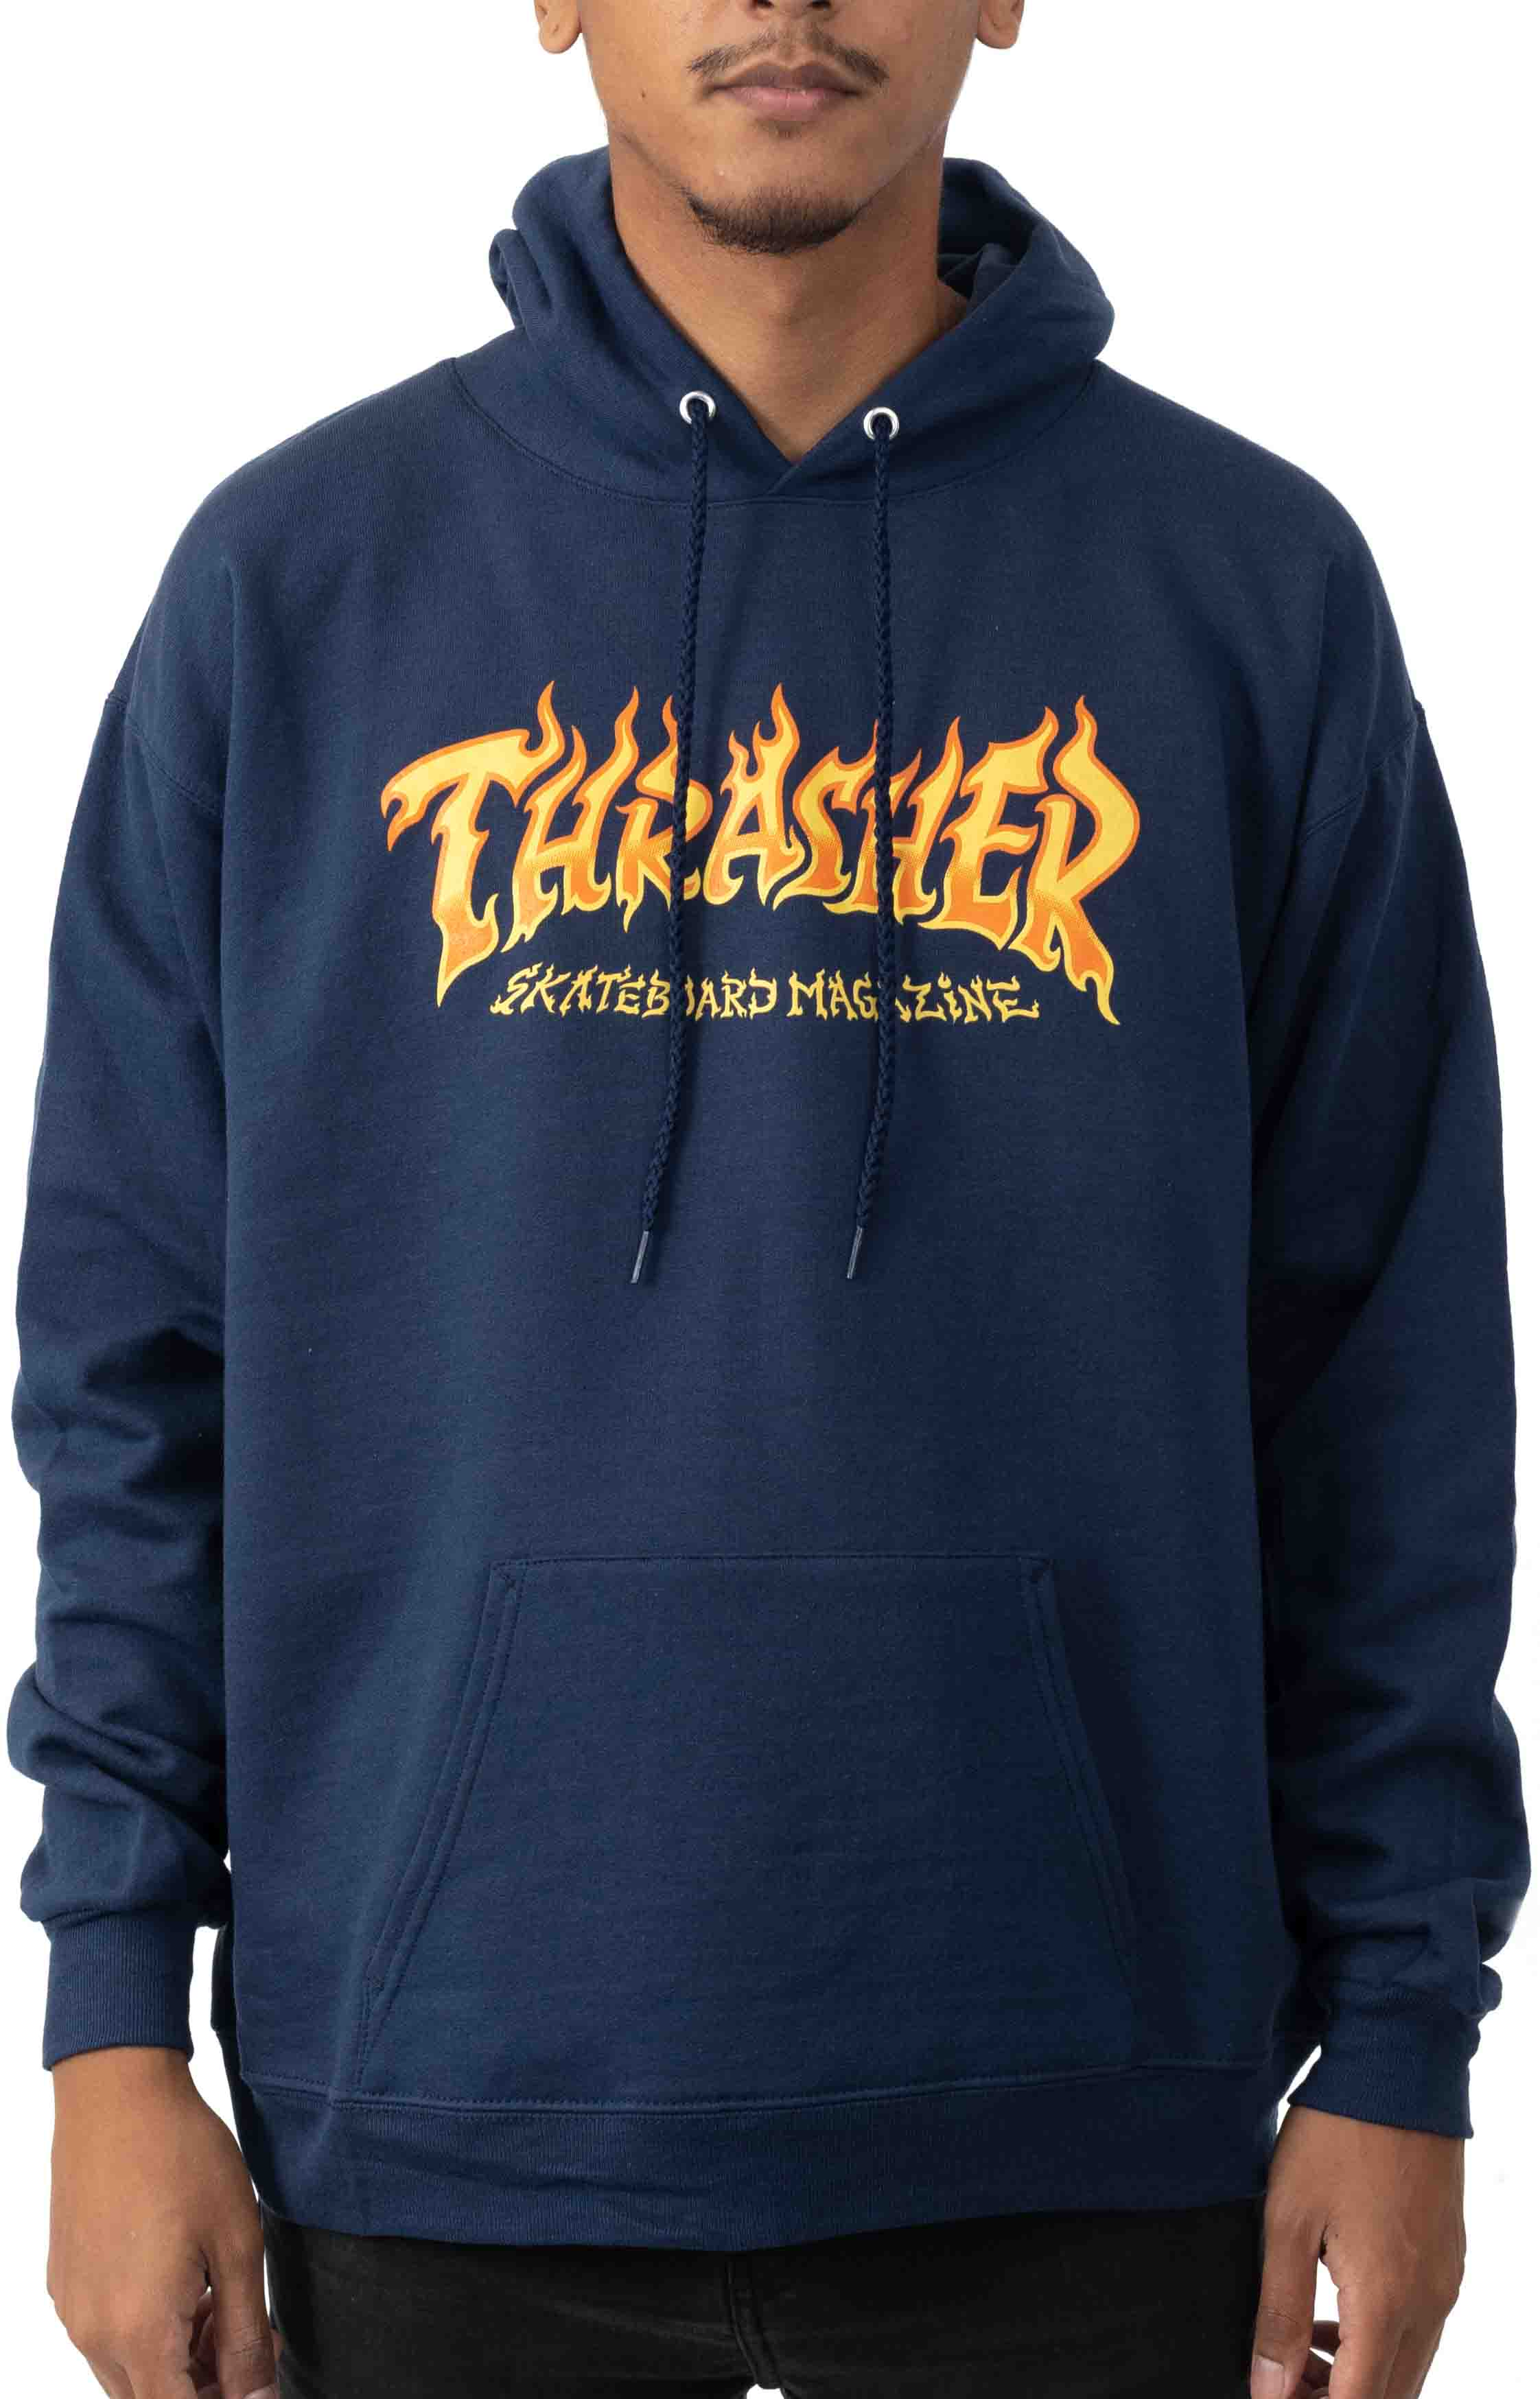 Fire Logo Pullover Hoodie - Navy